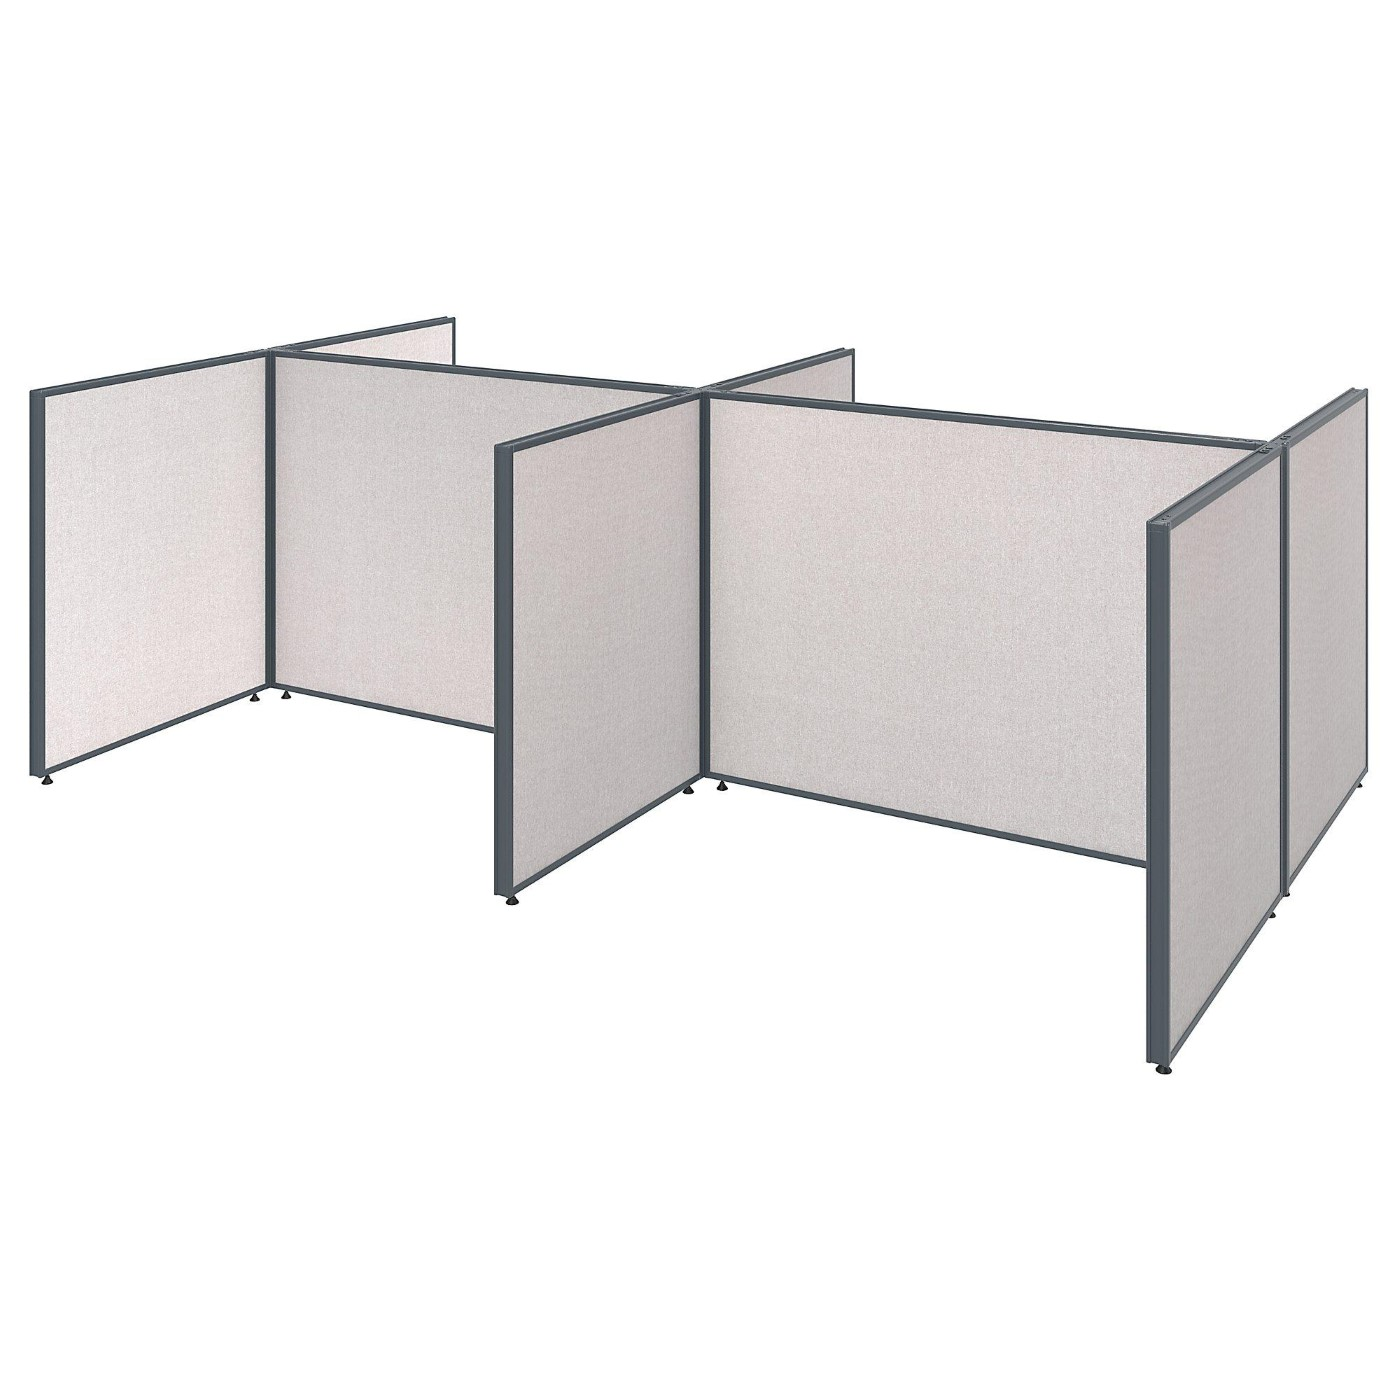 <font color=#c60><b>BUSH BUSINESS FURNITURE PROPANELS 4 PERSON OPEN CUBICLE CONFIGURATION. FREE SHIPPING</font></b>